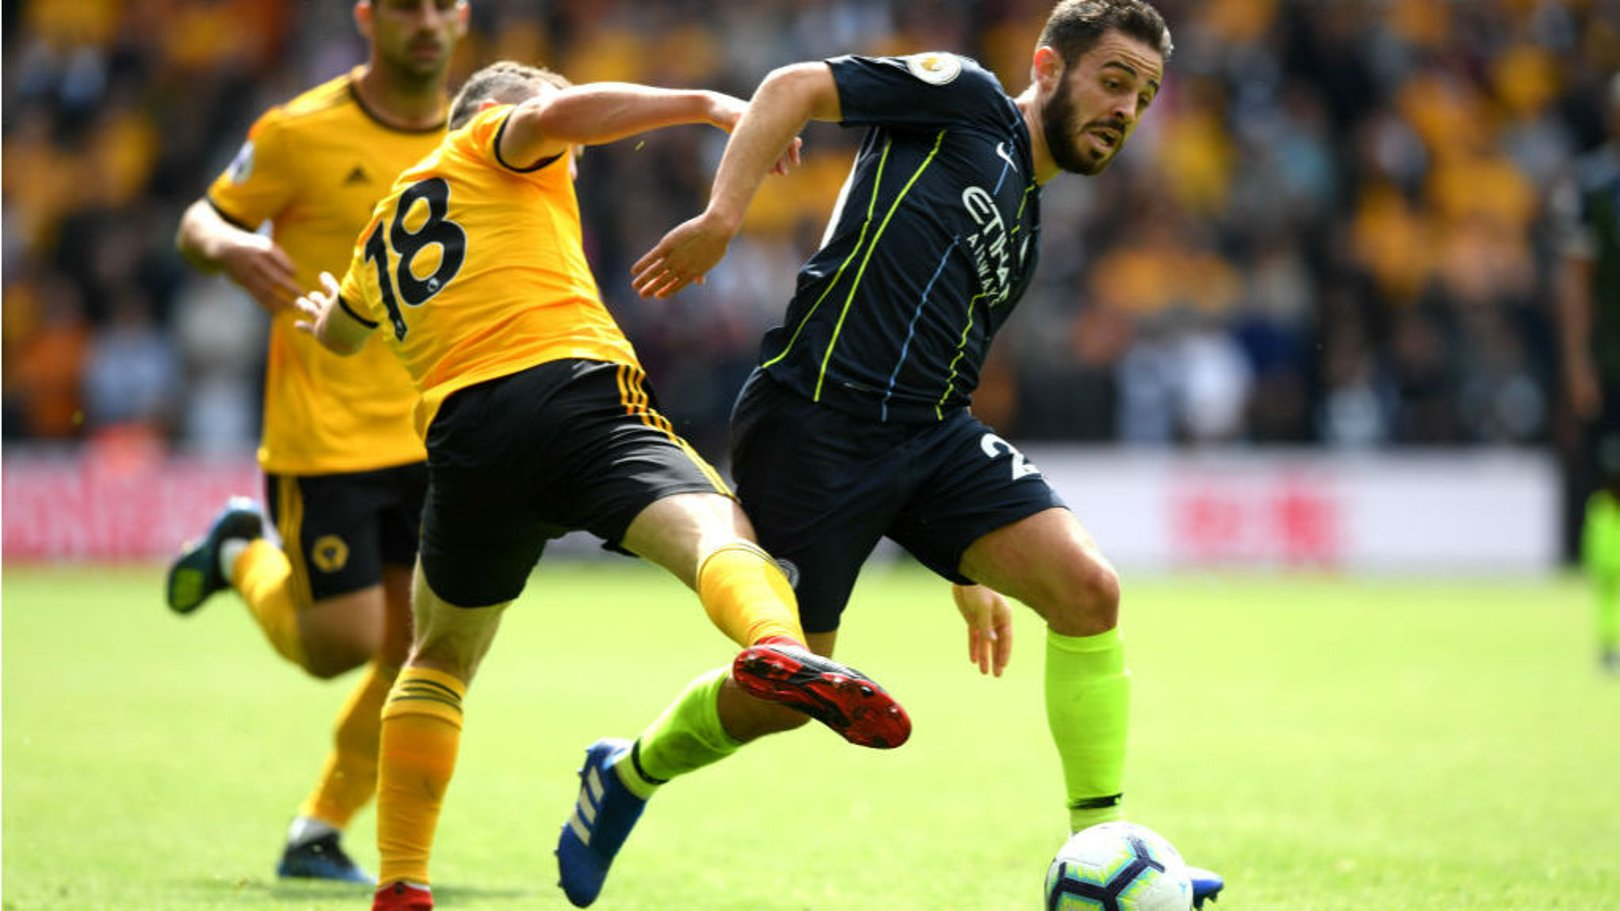 ROUGH JUSTICE: Bernardo Silva is brought down just outside the box